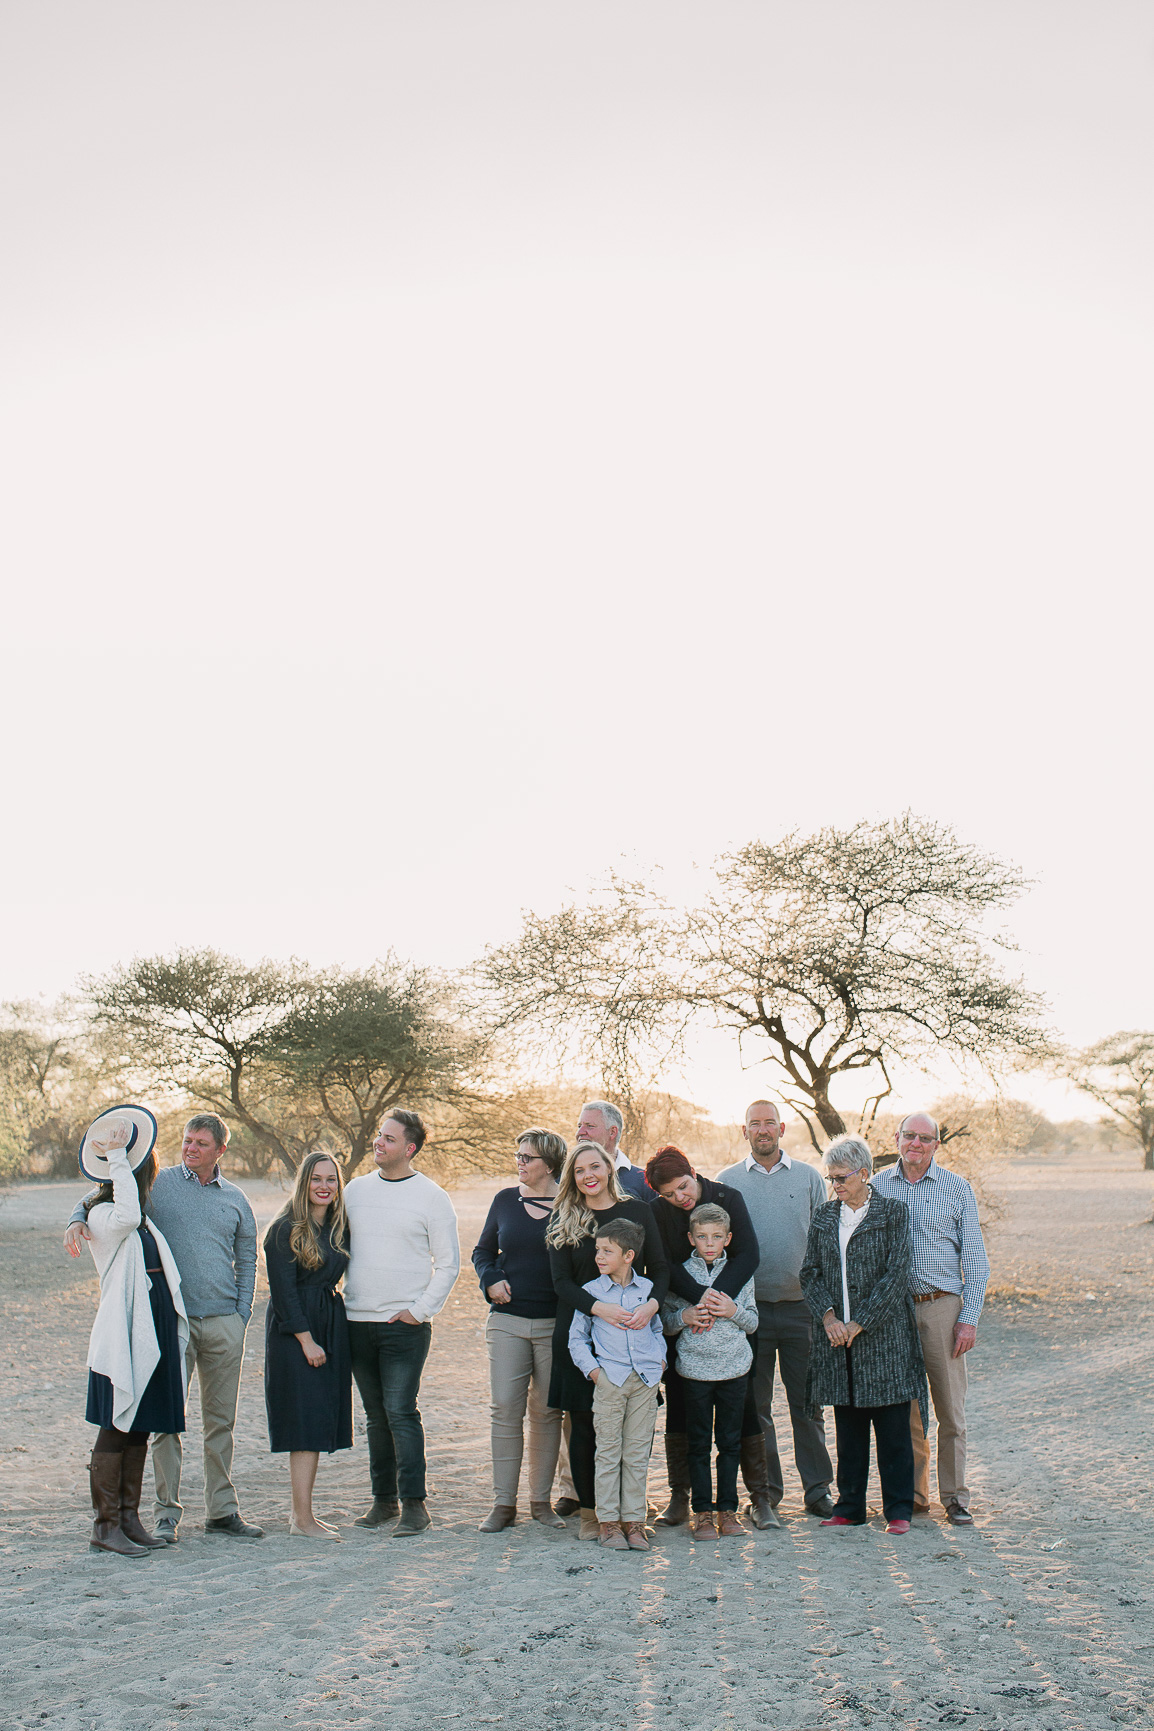 clareece smit photography family session002.jpg